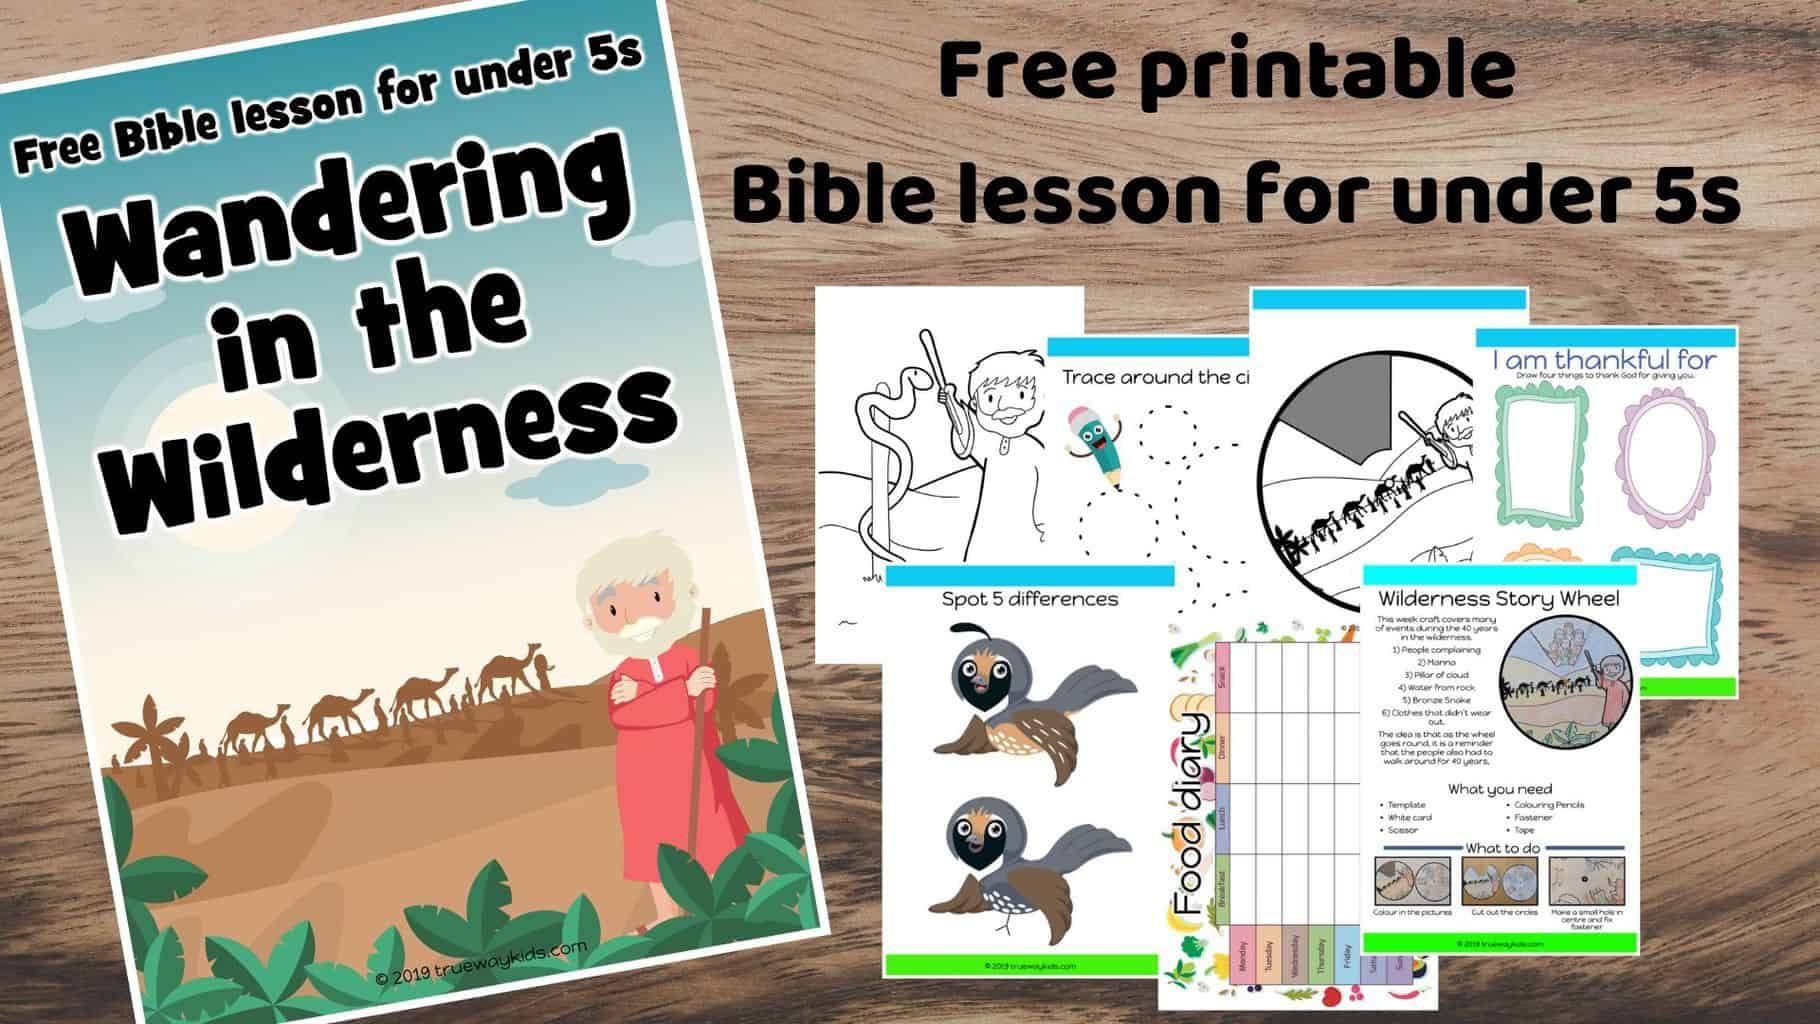 40 years Wandering in the wilderness. Learn about God's forgiveness.Games, Crafts, Activities, songs, lesson, worksheets and more. Free printable lesson.